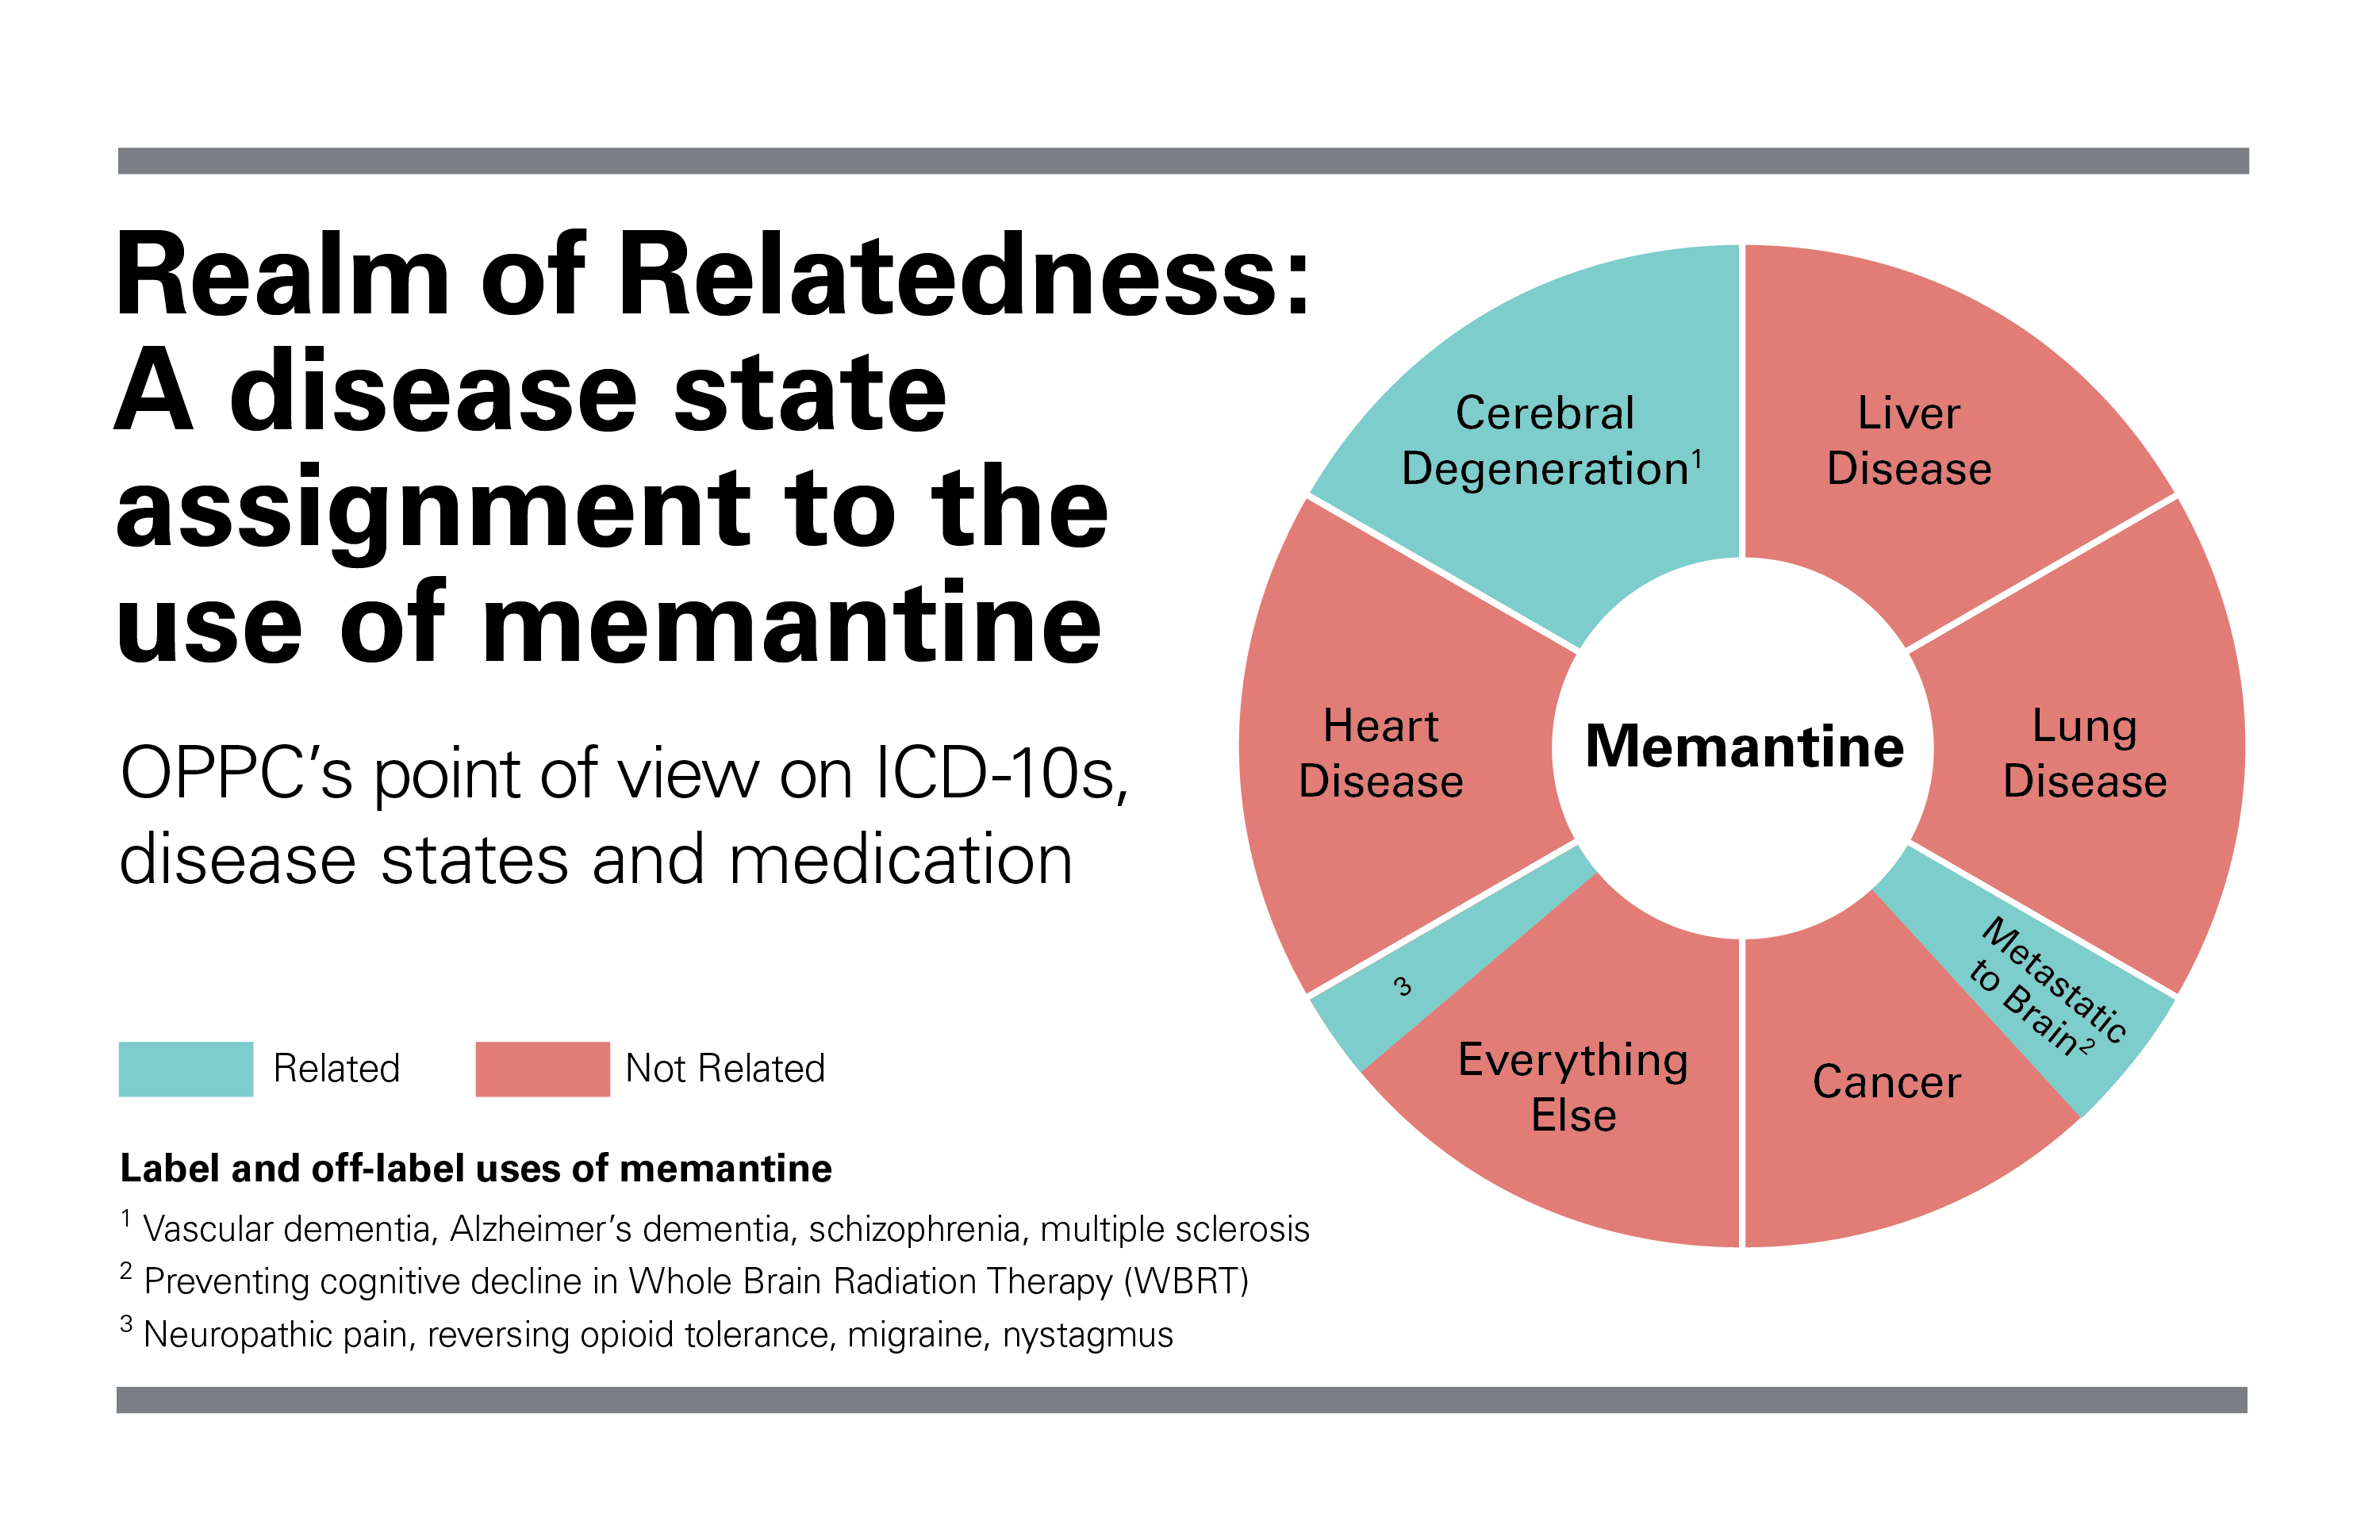 Realm of Relatedness disease state assignment off-label use of memantine medication